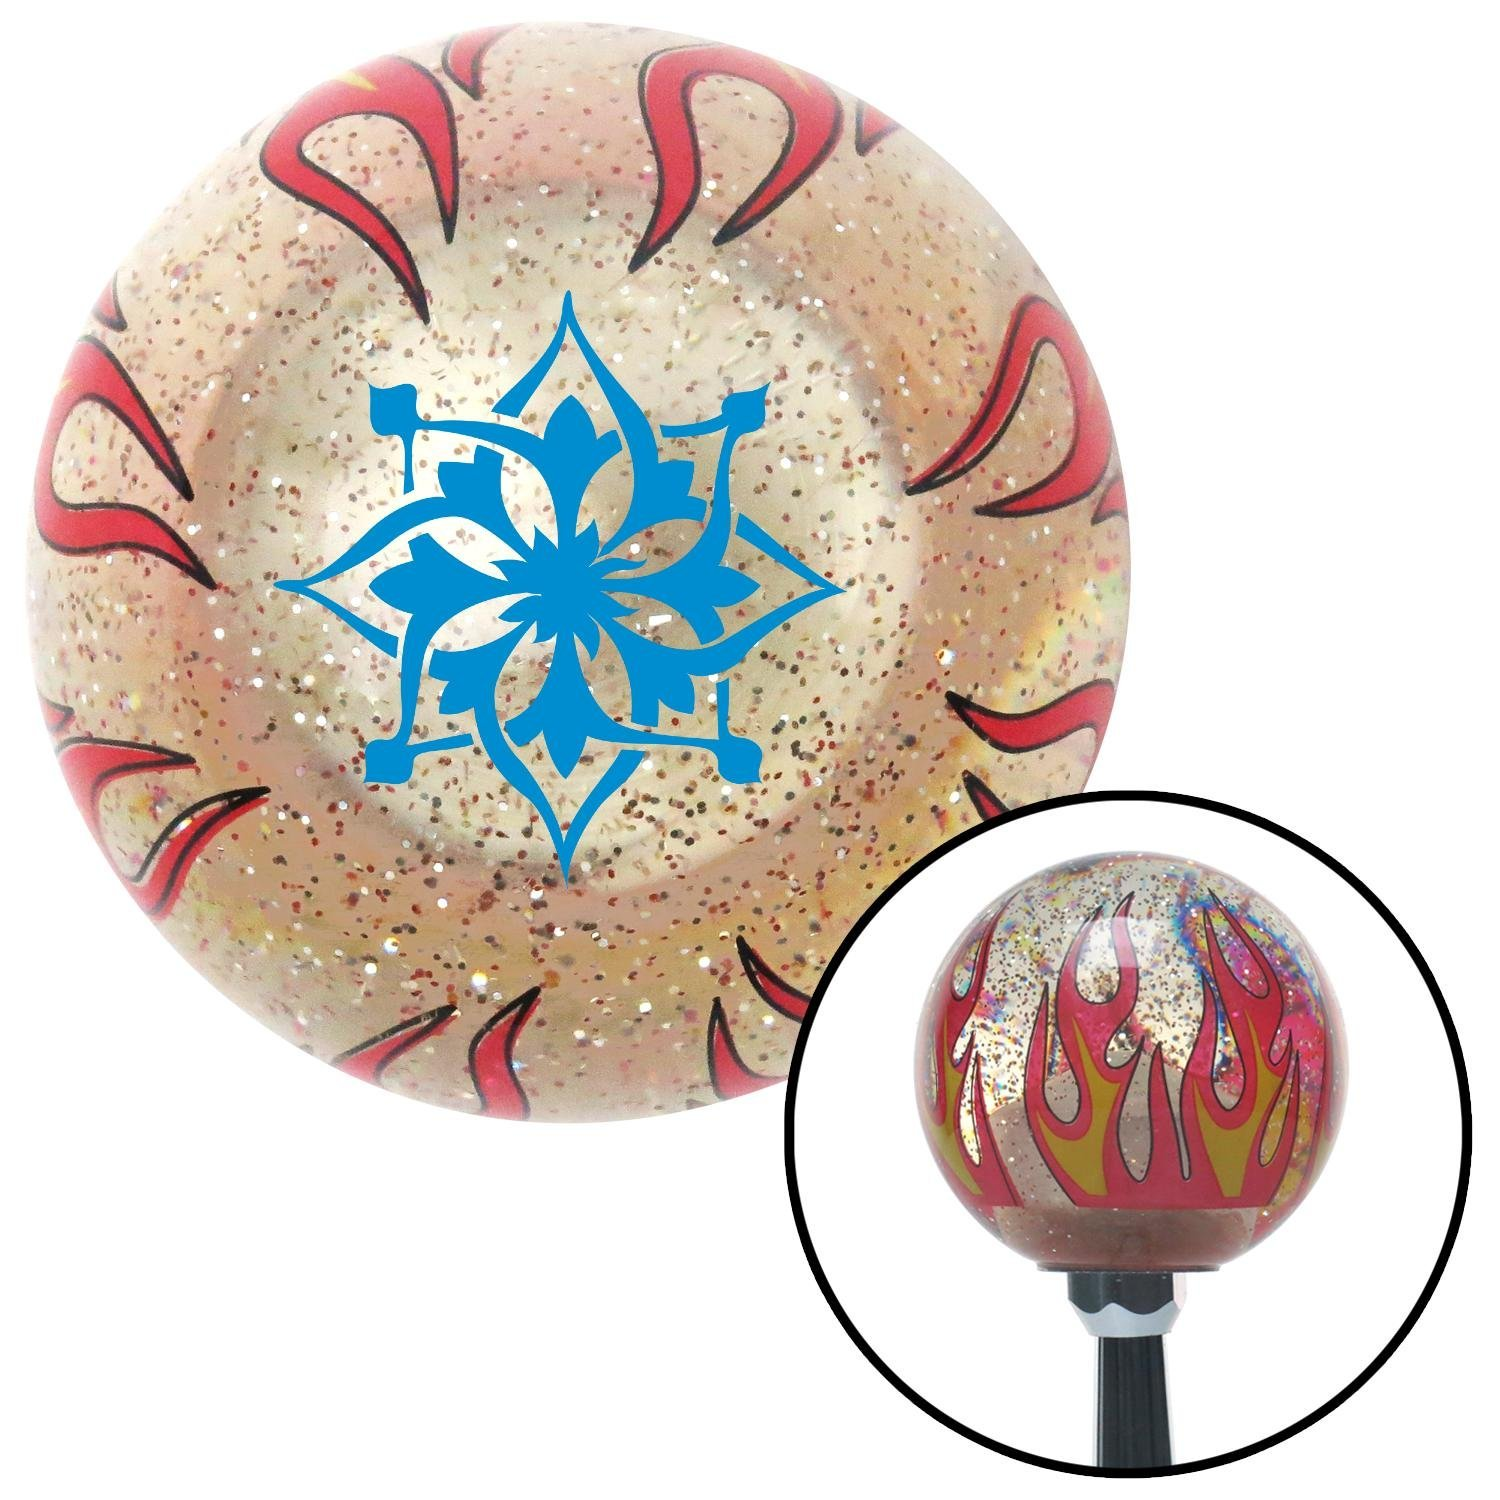 American Shifter 232341 Clear Flame Metal Flake Shift Knob with M16 x 1.5 Insert Blue Hawaiian Flower #5